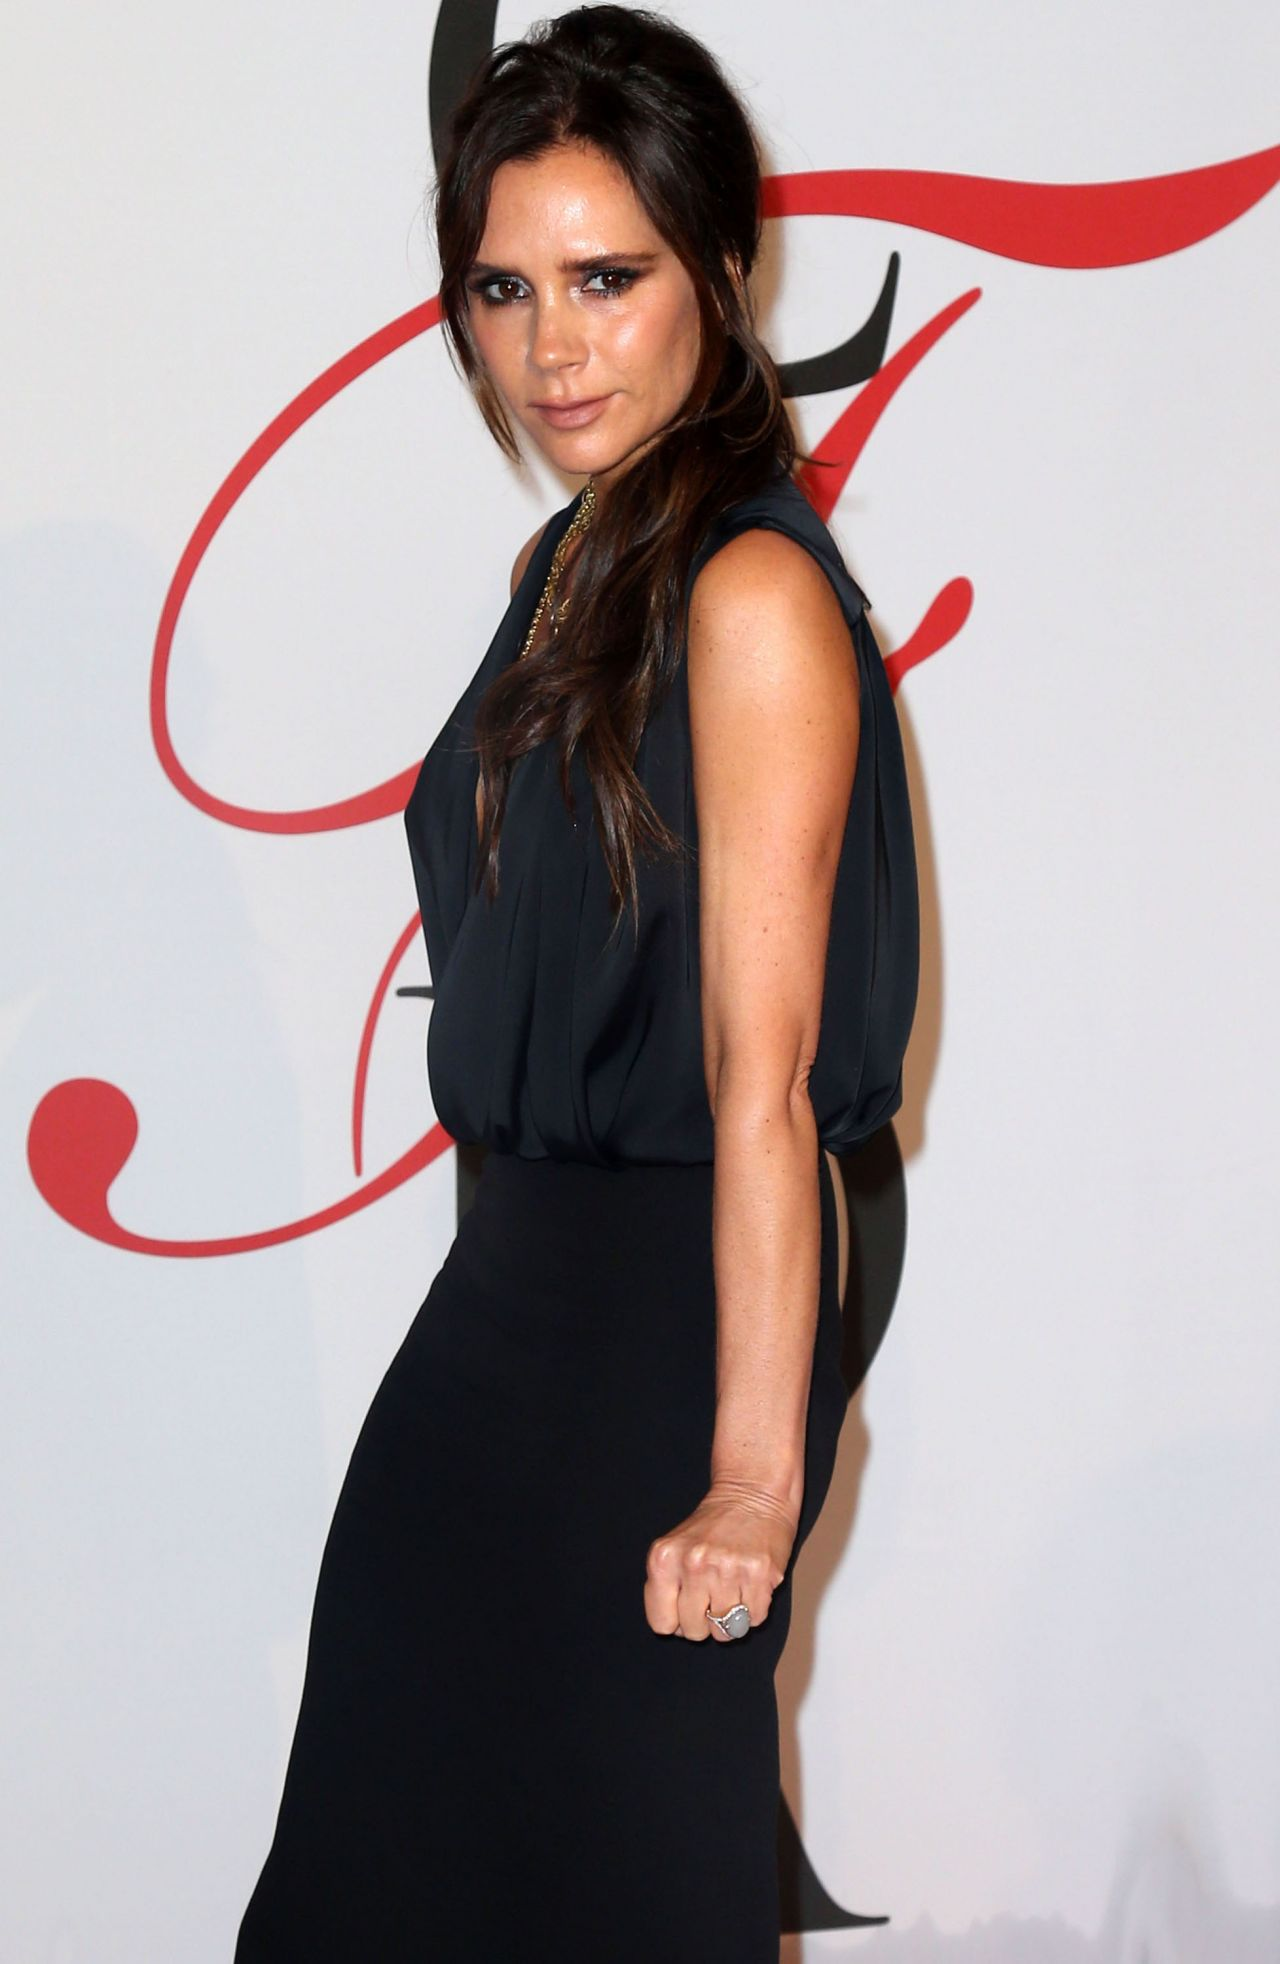 victoria-beckham-2015-cfda-fashion-awards-in-new-york-city_9